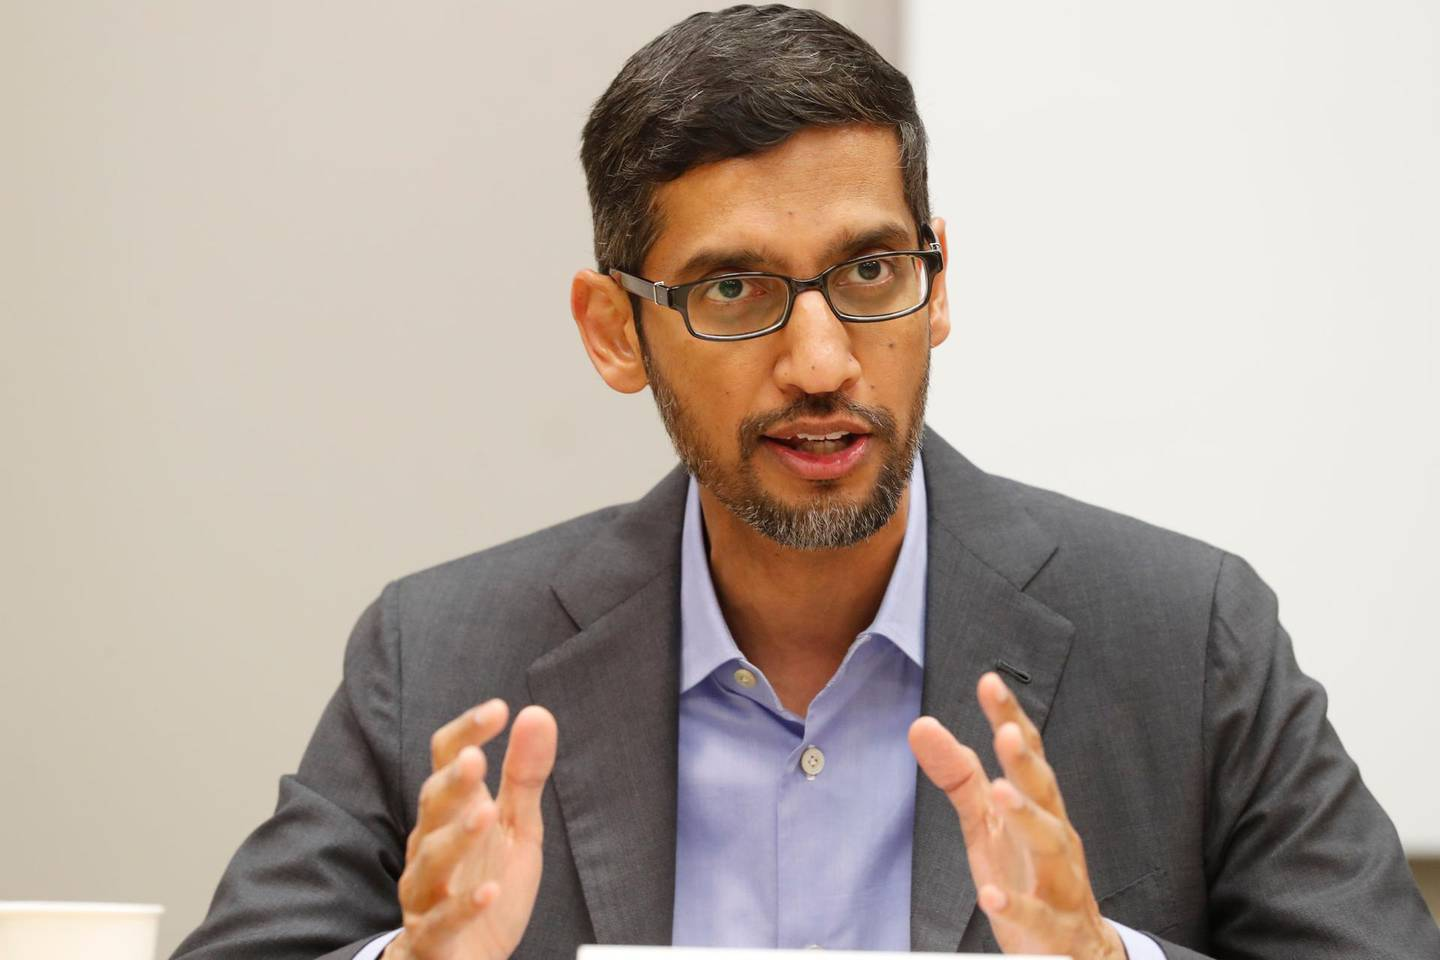 """FILE- In this Oct. 3, 2019 file photo, Google CEO Sundar Pichai speaks during a visit to El Centro College in Dallas. Pichai has apologized for how a prominent artificial intelligence researcher's abrupt departure last week has """"seeded doubts"""" in the company. Pichai told Google employees in a memo Wednesday, Dec. 9, 2020 obtained by Axios that the tech company is beginning a review of the circumstances leading up to Black computer scientist Timnit Gebru's exit and how Google could have """"led a more respectful process."""" (AP Photo/LM Otero, File)"""